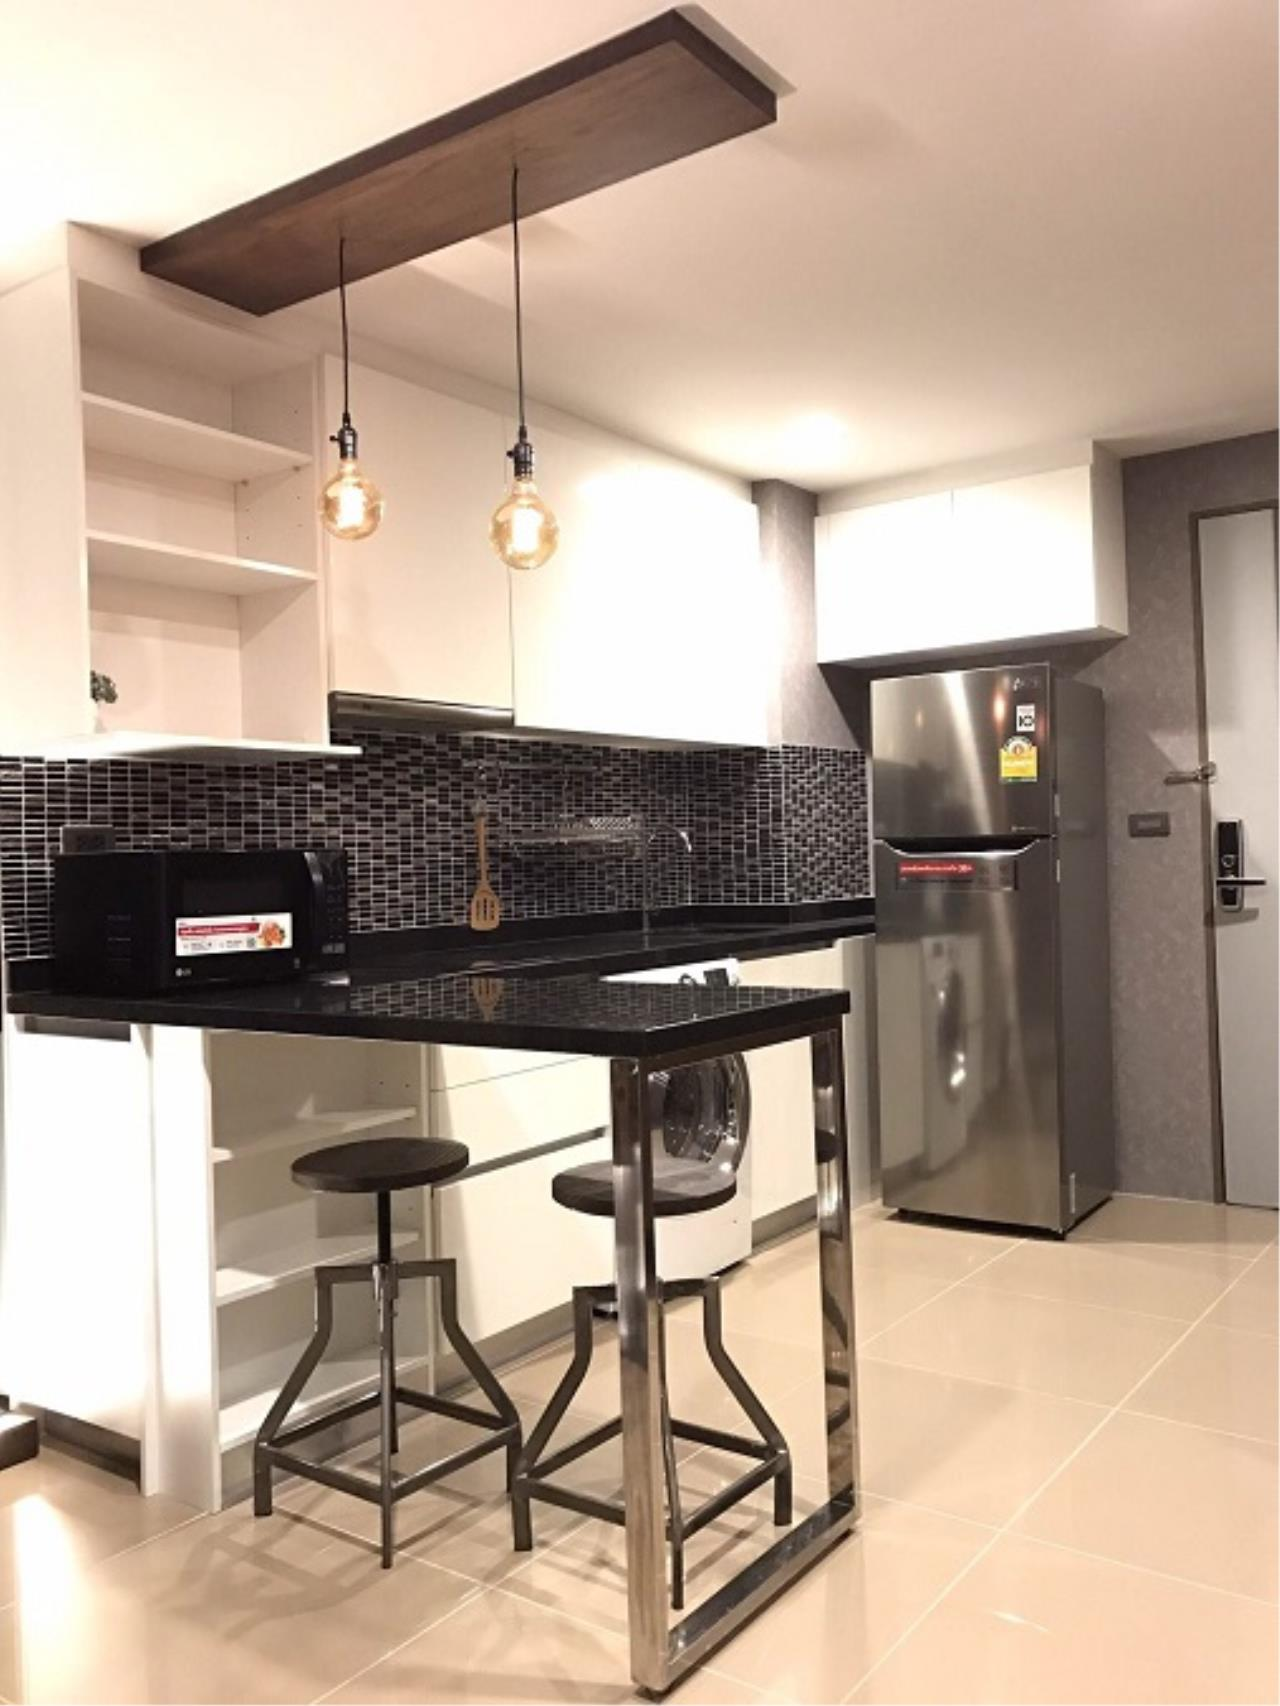 RE/MAX All Star Realty Agency's Mirage Sukhumvit one bed condo for sale/rent (BTS Asoke / MRT Sukhumvit) 2